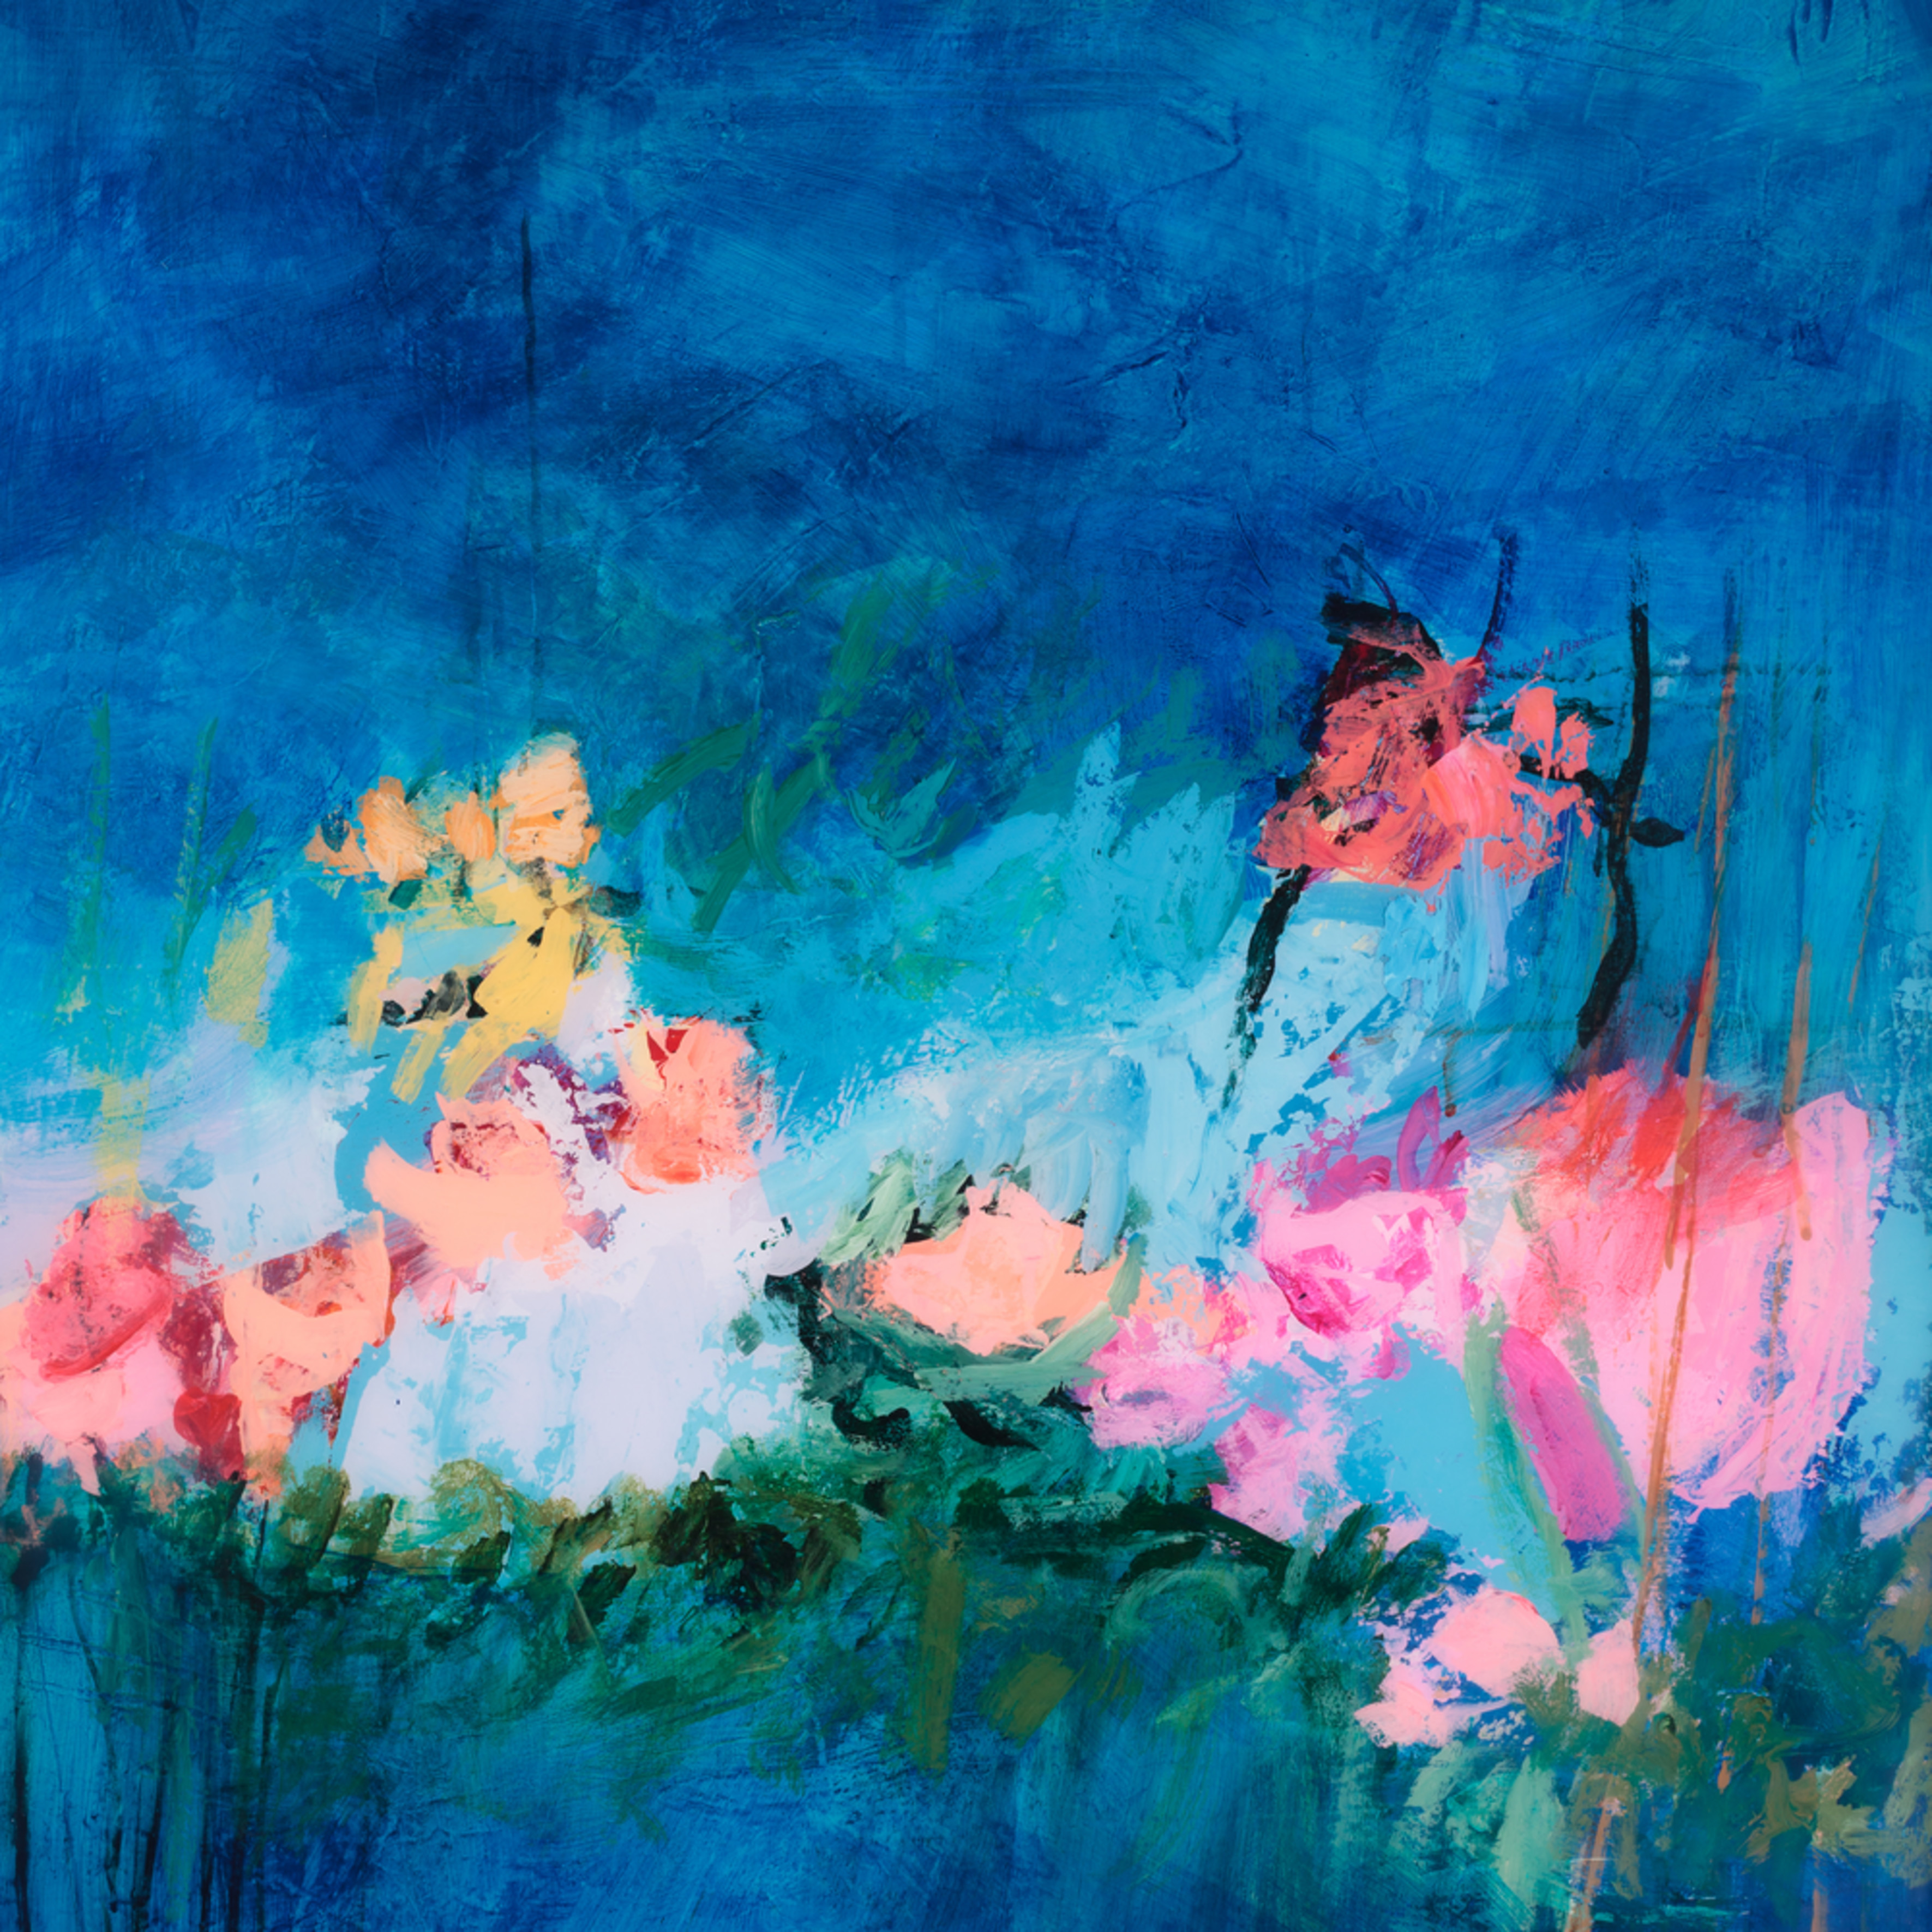 Tracy lynn pristas abstract floral artwork pgitkg